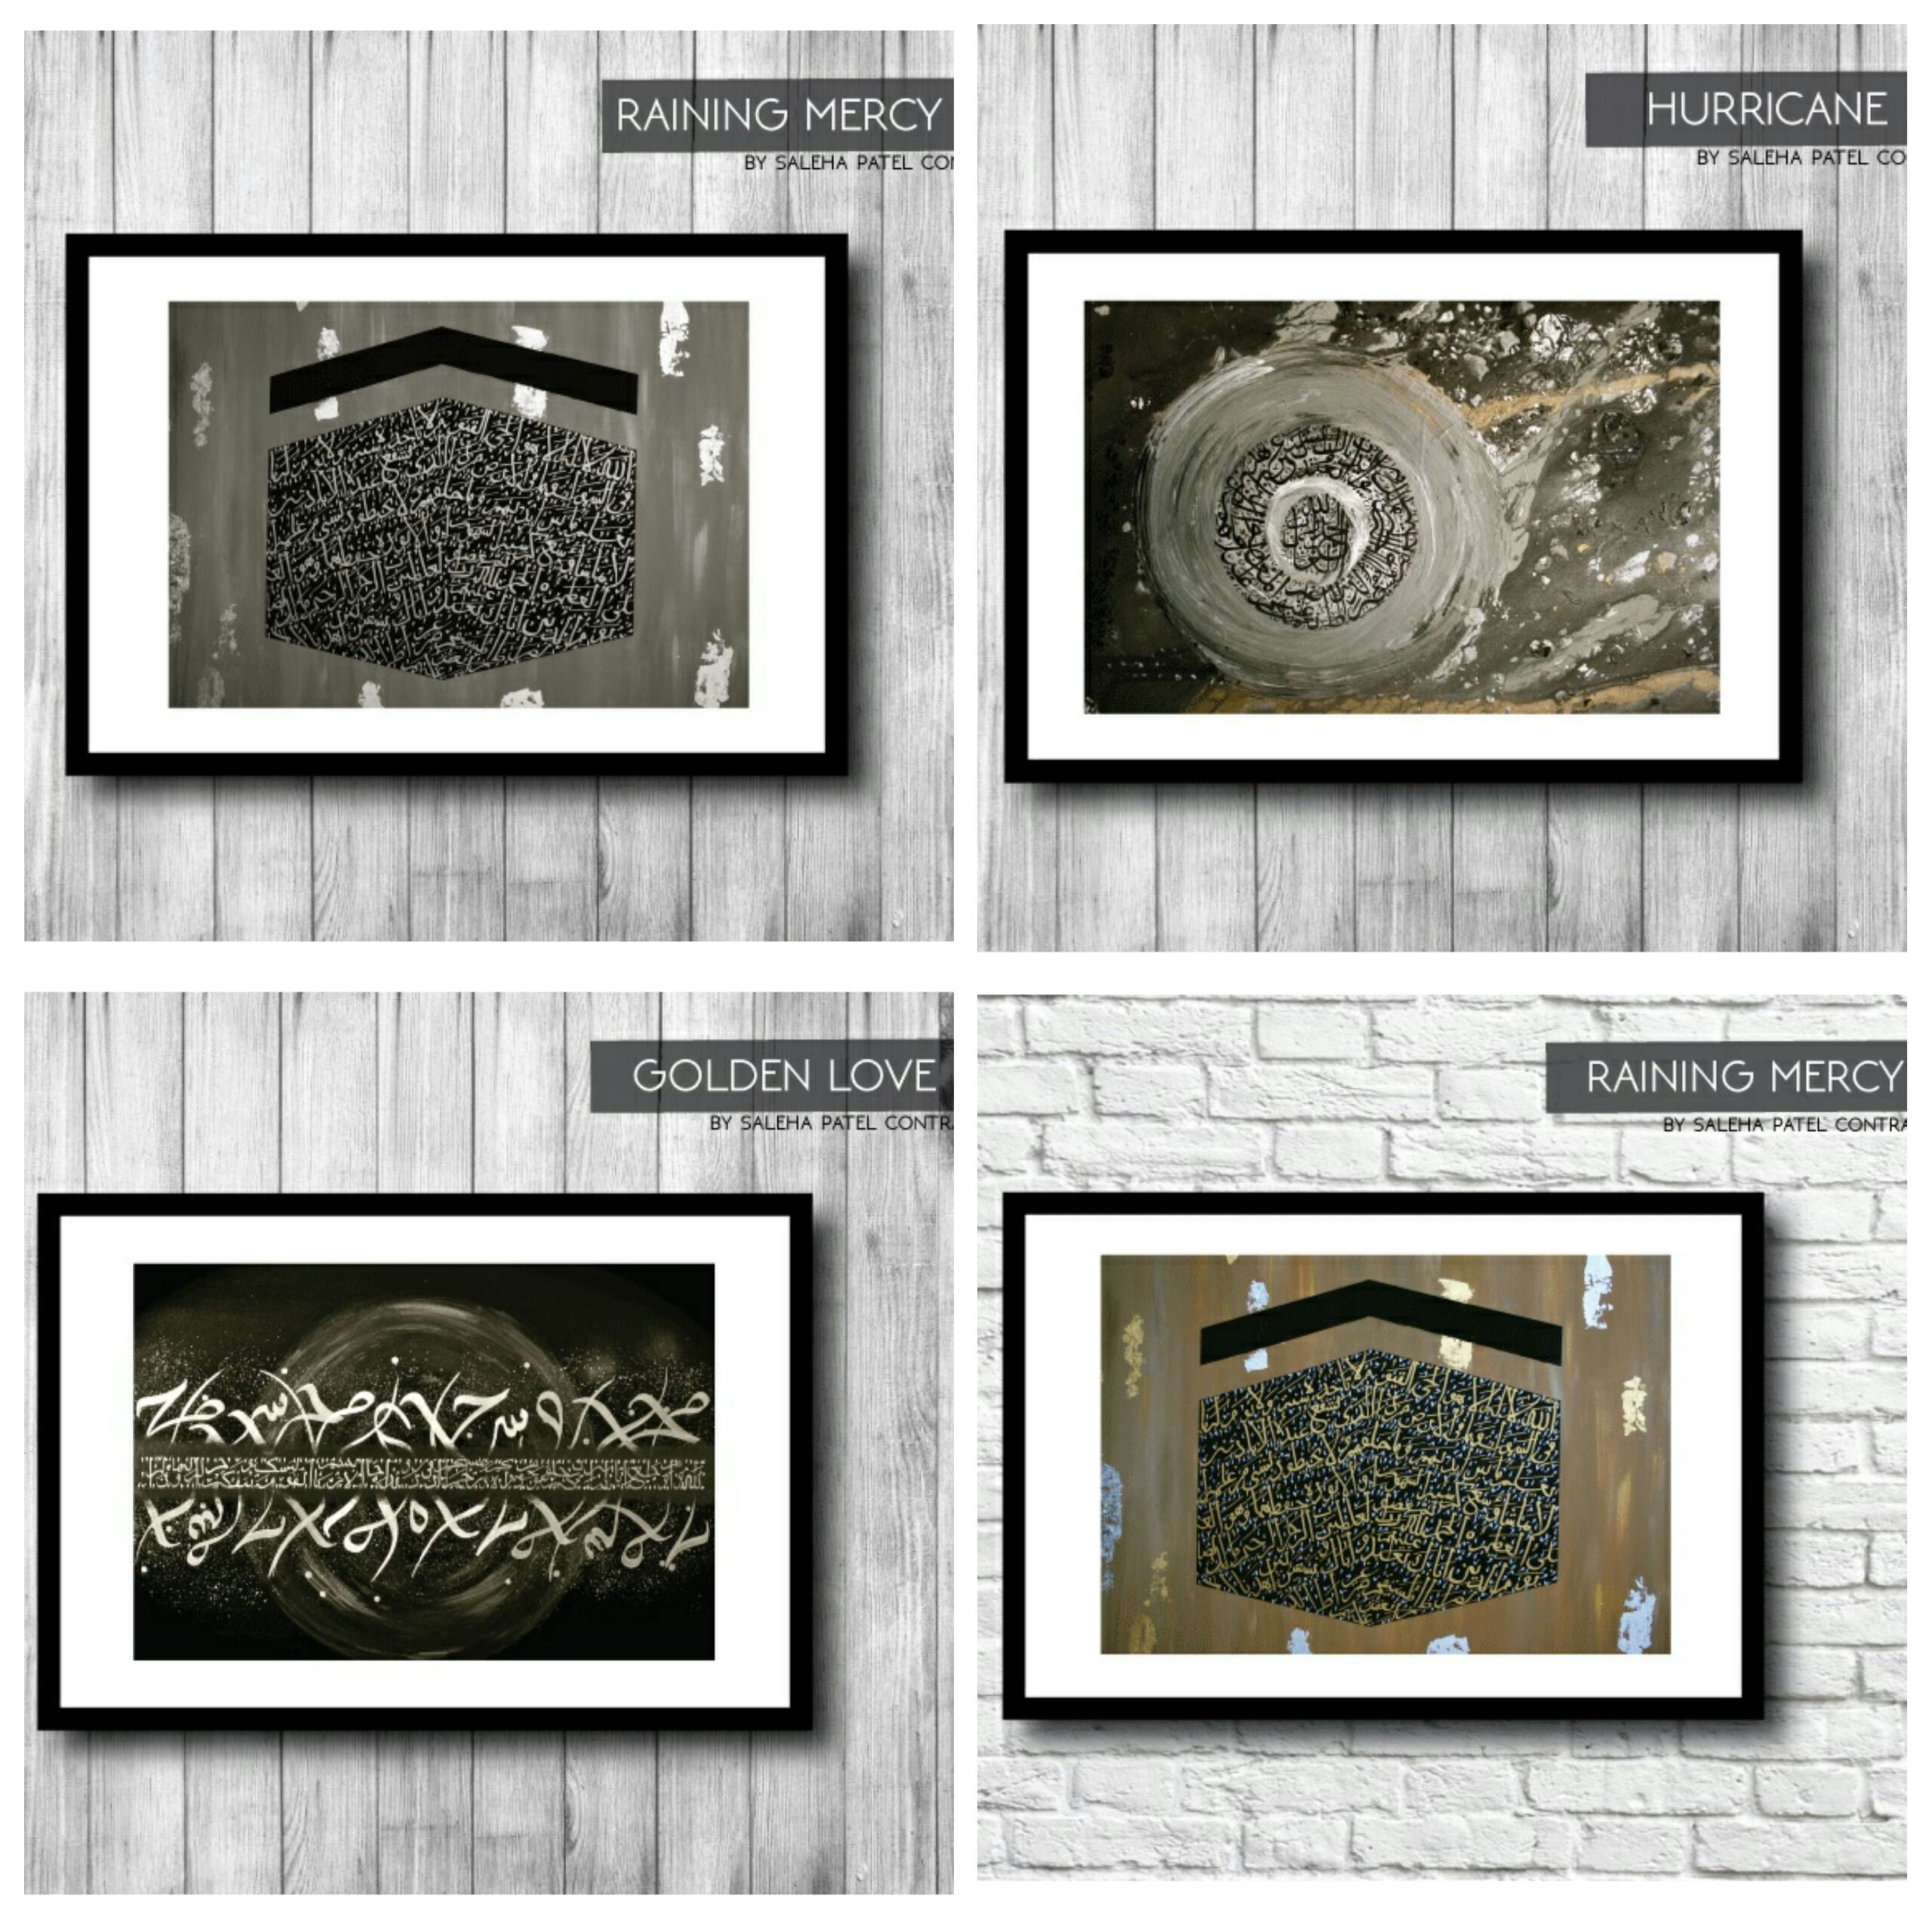 Surah Fatiha, Ayat Ul Kursi, Surah Rum. Islamic Wall Art Prints Available  Here.